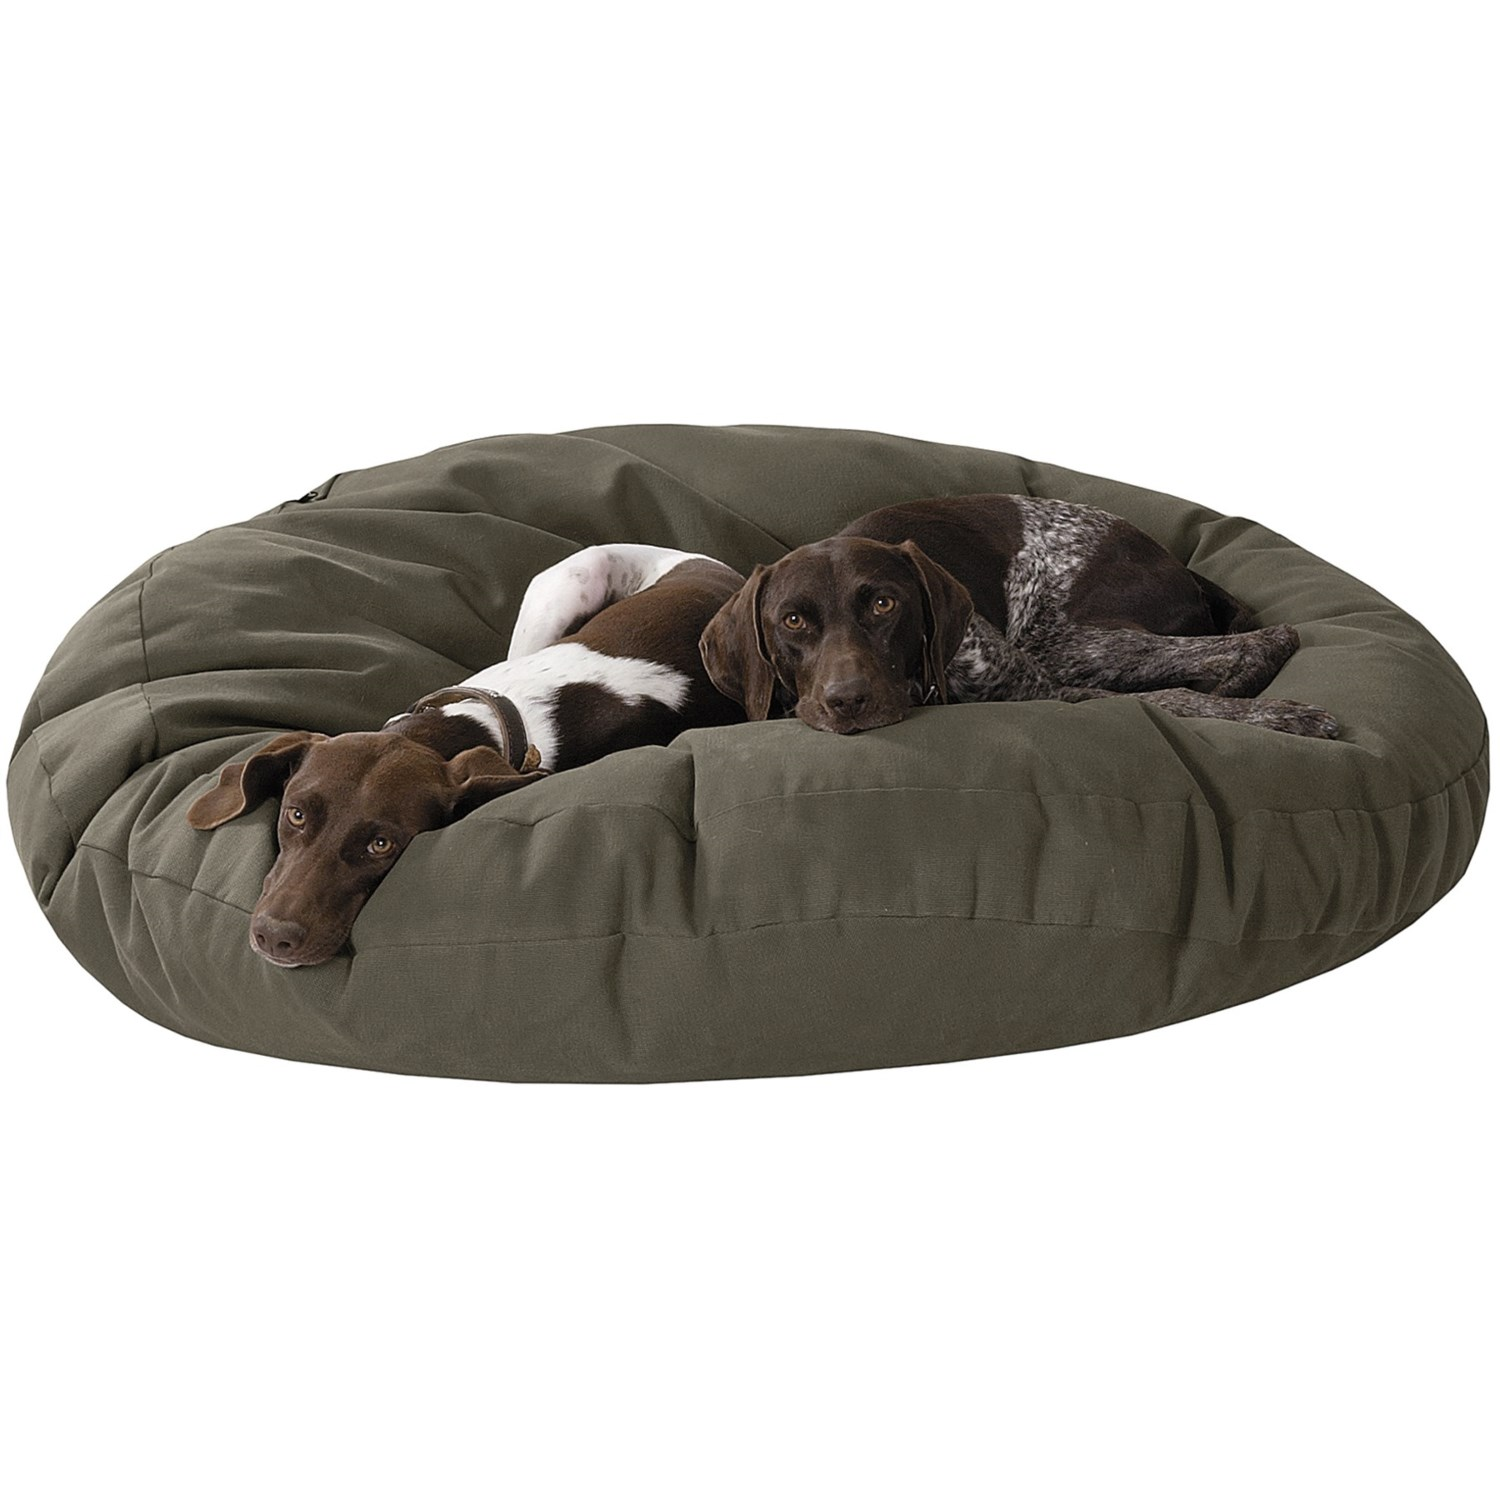 3buy Kimlor Round Jumo Dog Bed 50 Quot Camping Amp Hiking Price